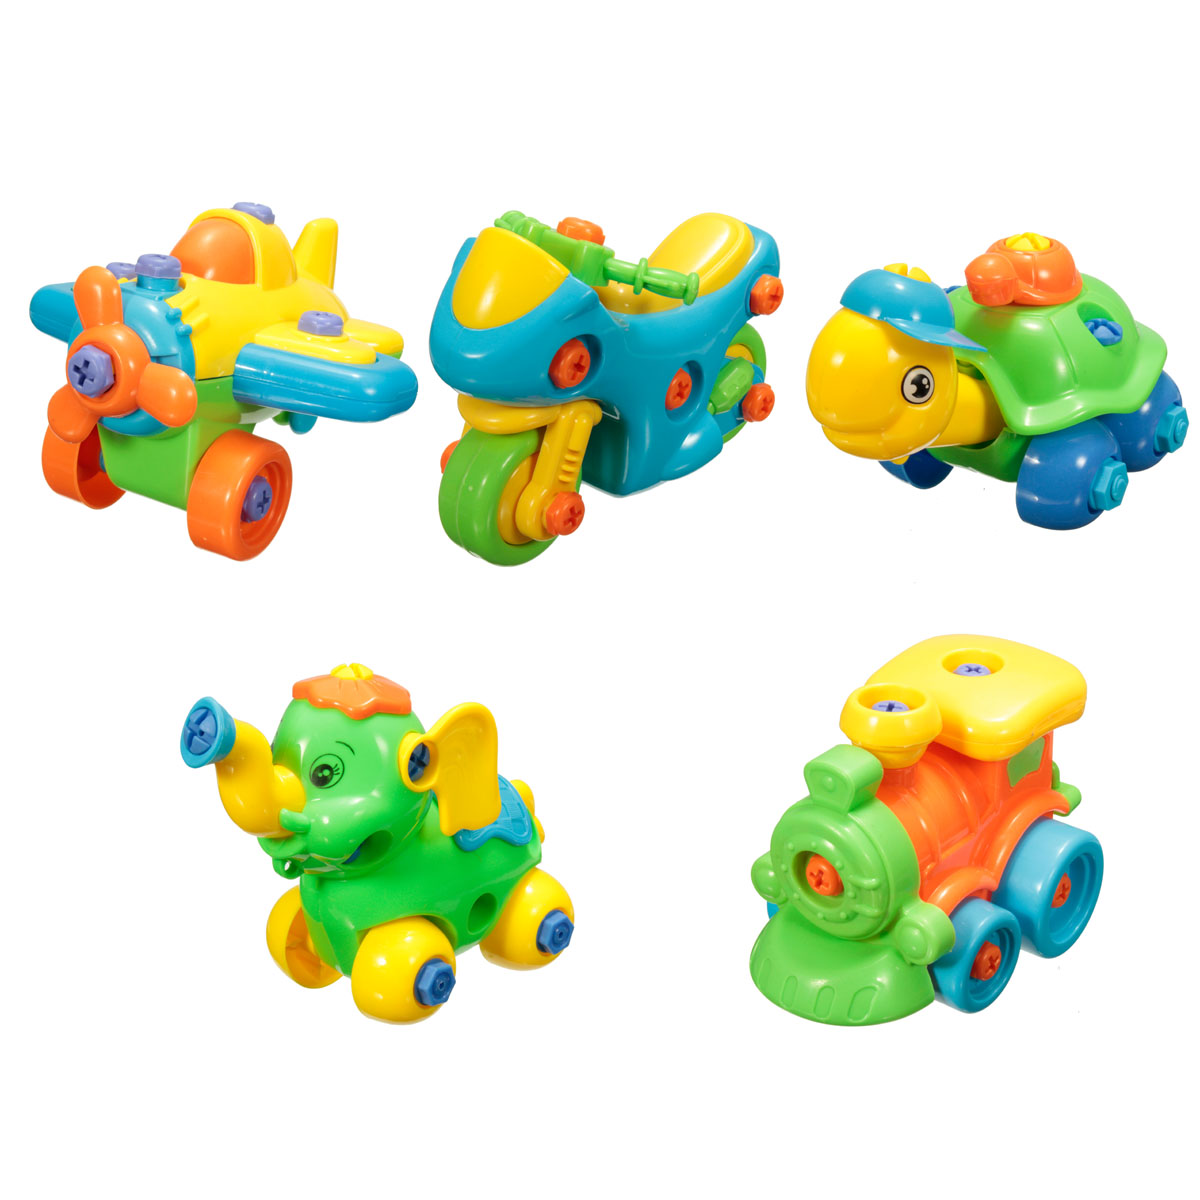 Jigsaw Building Assembled Toys Develop Learning Fun Build A Train Kids Children's Educational Toy With Clamp & Screwdriver Tool(China (Mainland))